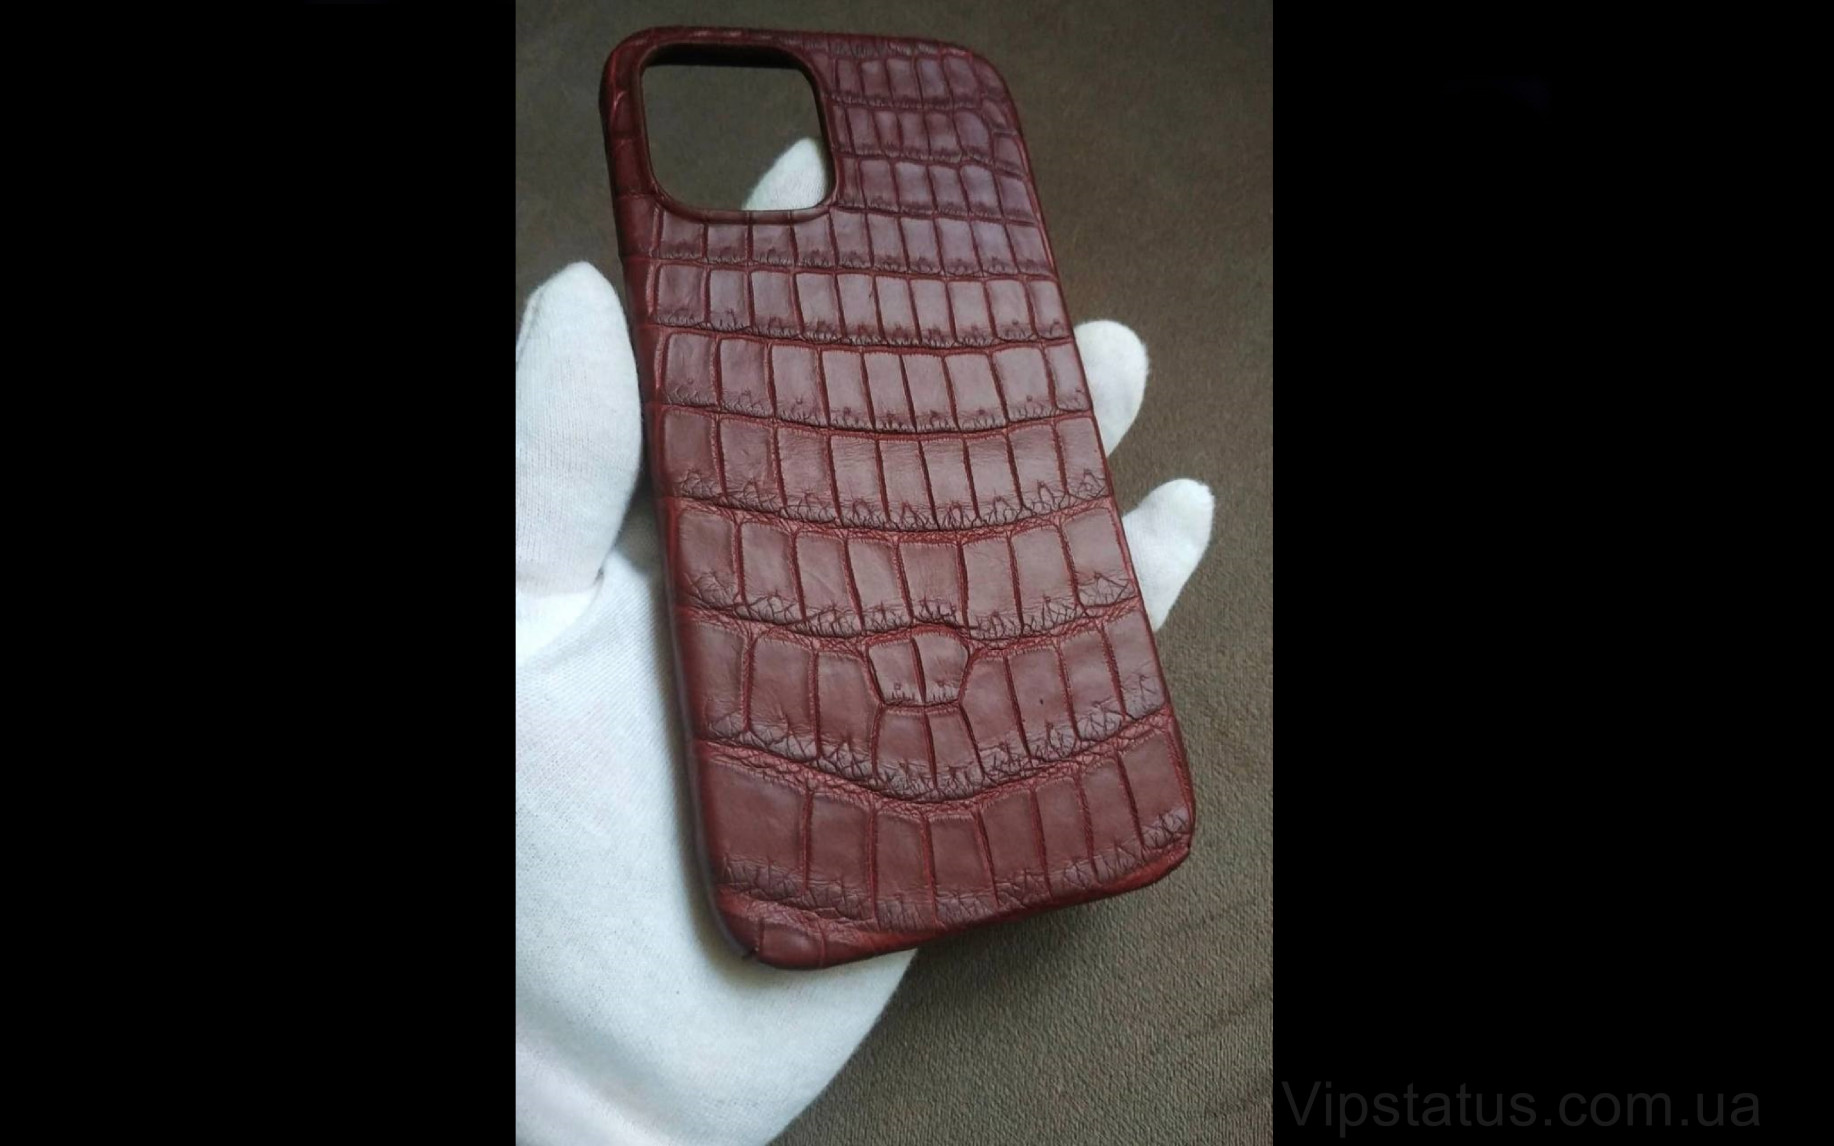 Elite Cherry Edition Элитный чехол IPhone 11 12 Pro Max Cherry Edition Elite case IPhone 11 12 Pro Max Crocodile leather image 1